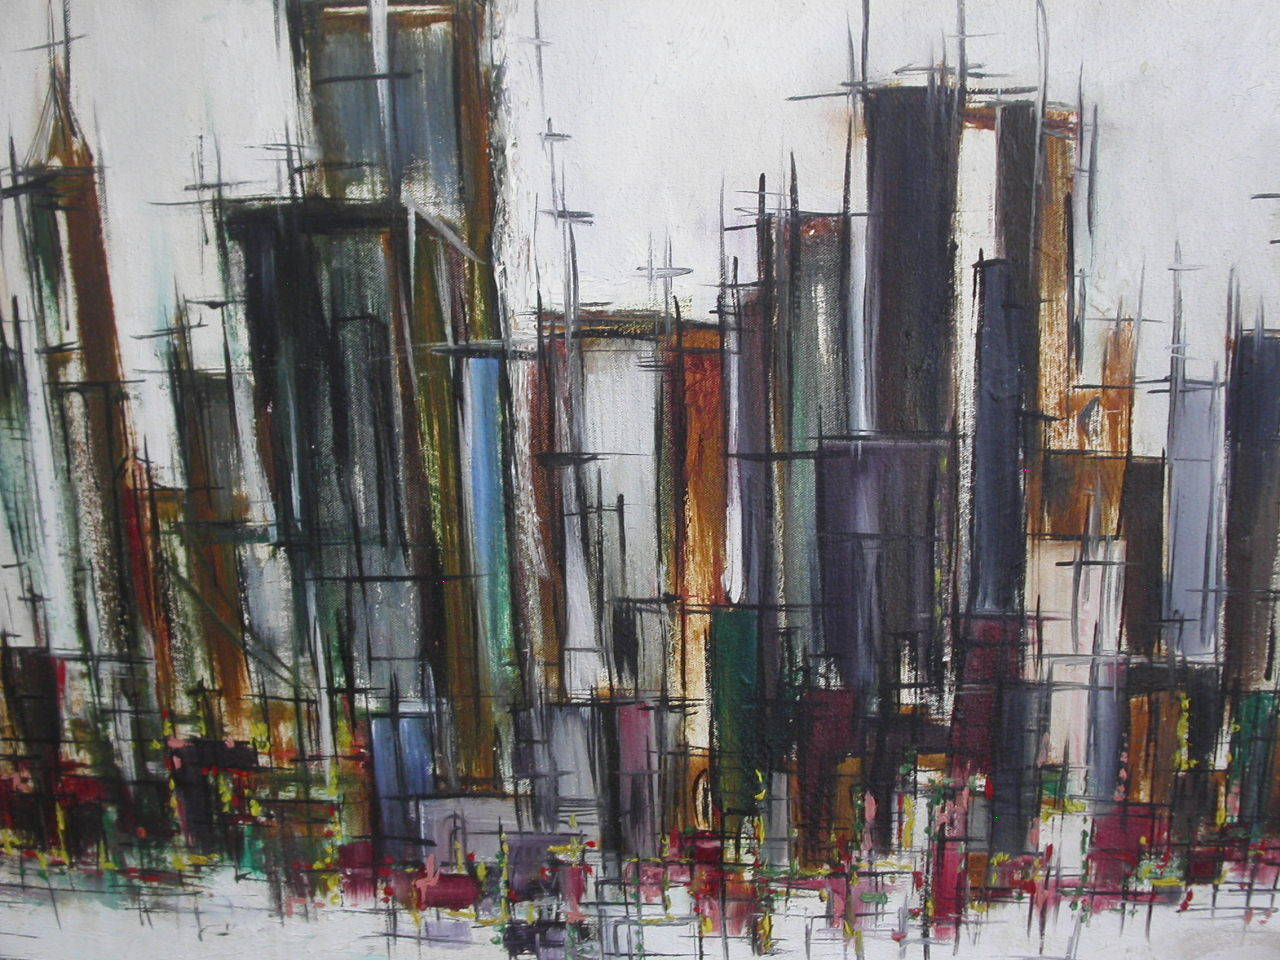 original vintage 60s abstract city scape painting | retro squad